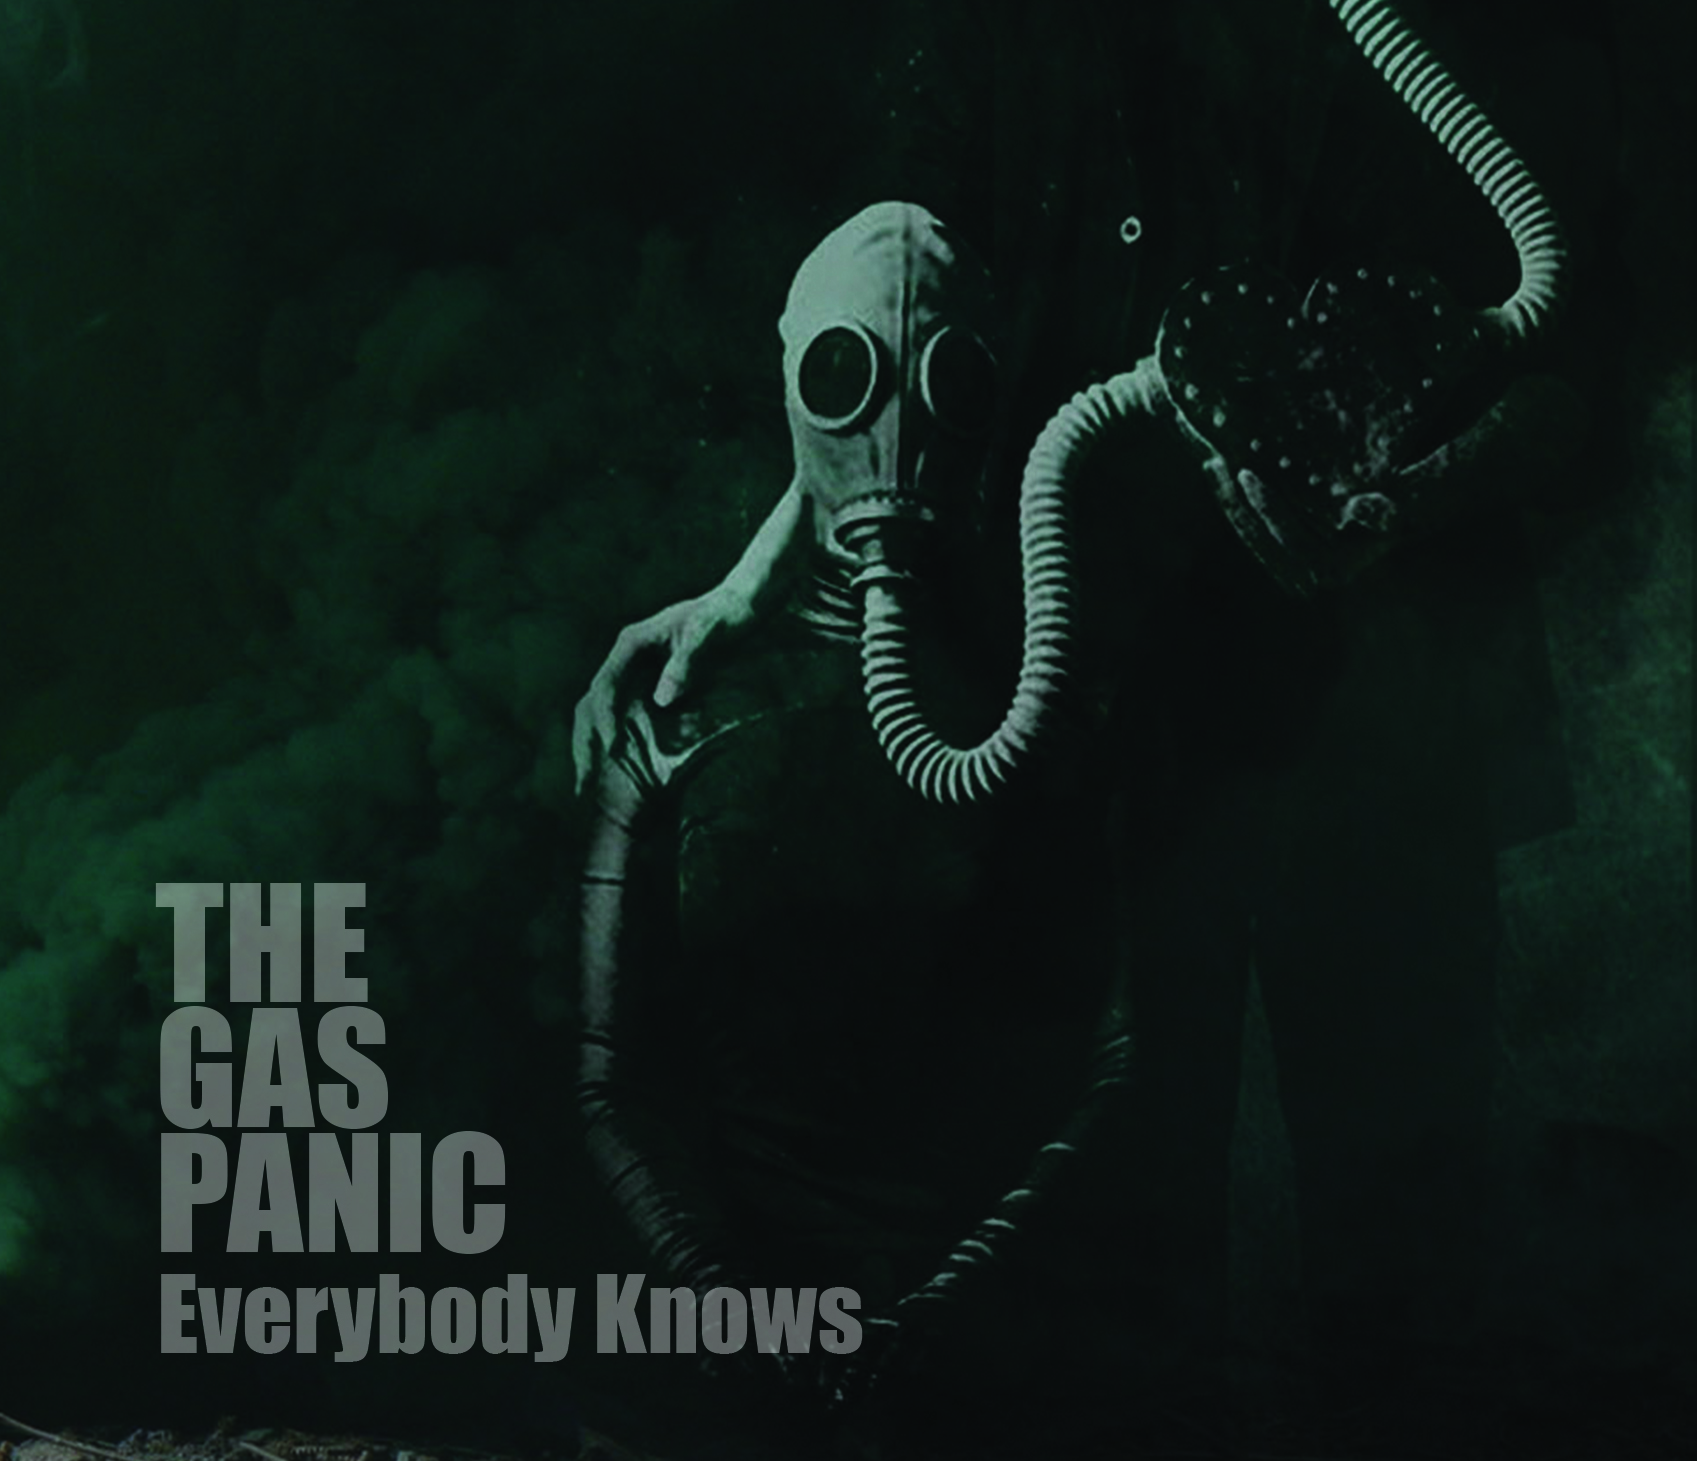 Everybody Knows - 1. Everybody Knows2. Liar3. Even If You Wanted To Call4. I Will5. All For You6. Fine By Me7. When I Try I Lose8. Fade